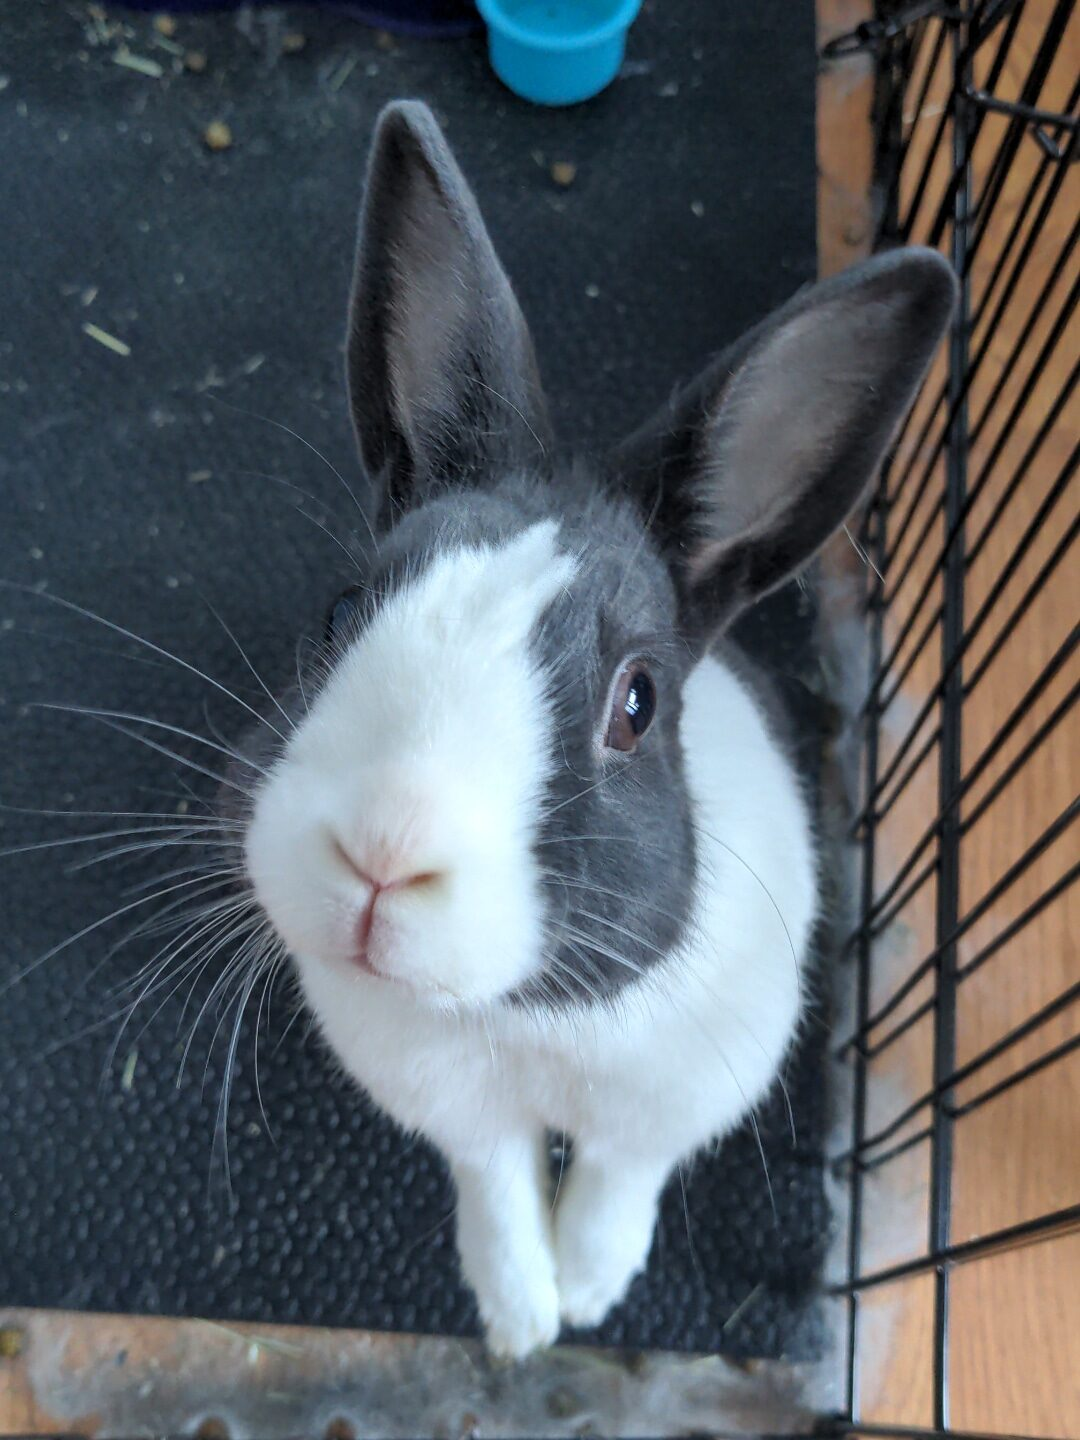 Black and white Dutch bunny rabbit who inspired the Rabbit Care Guide standing on his back legs and looking up into the camera